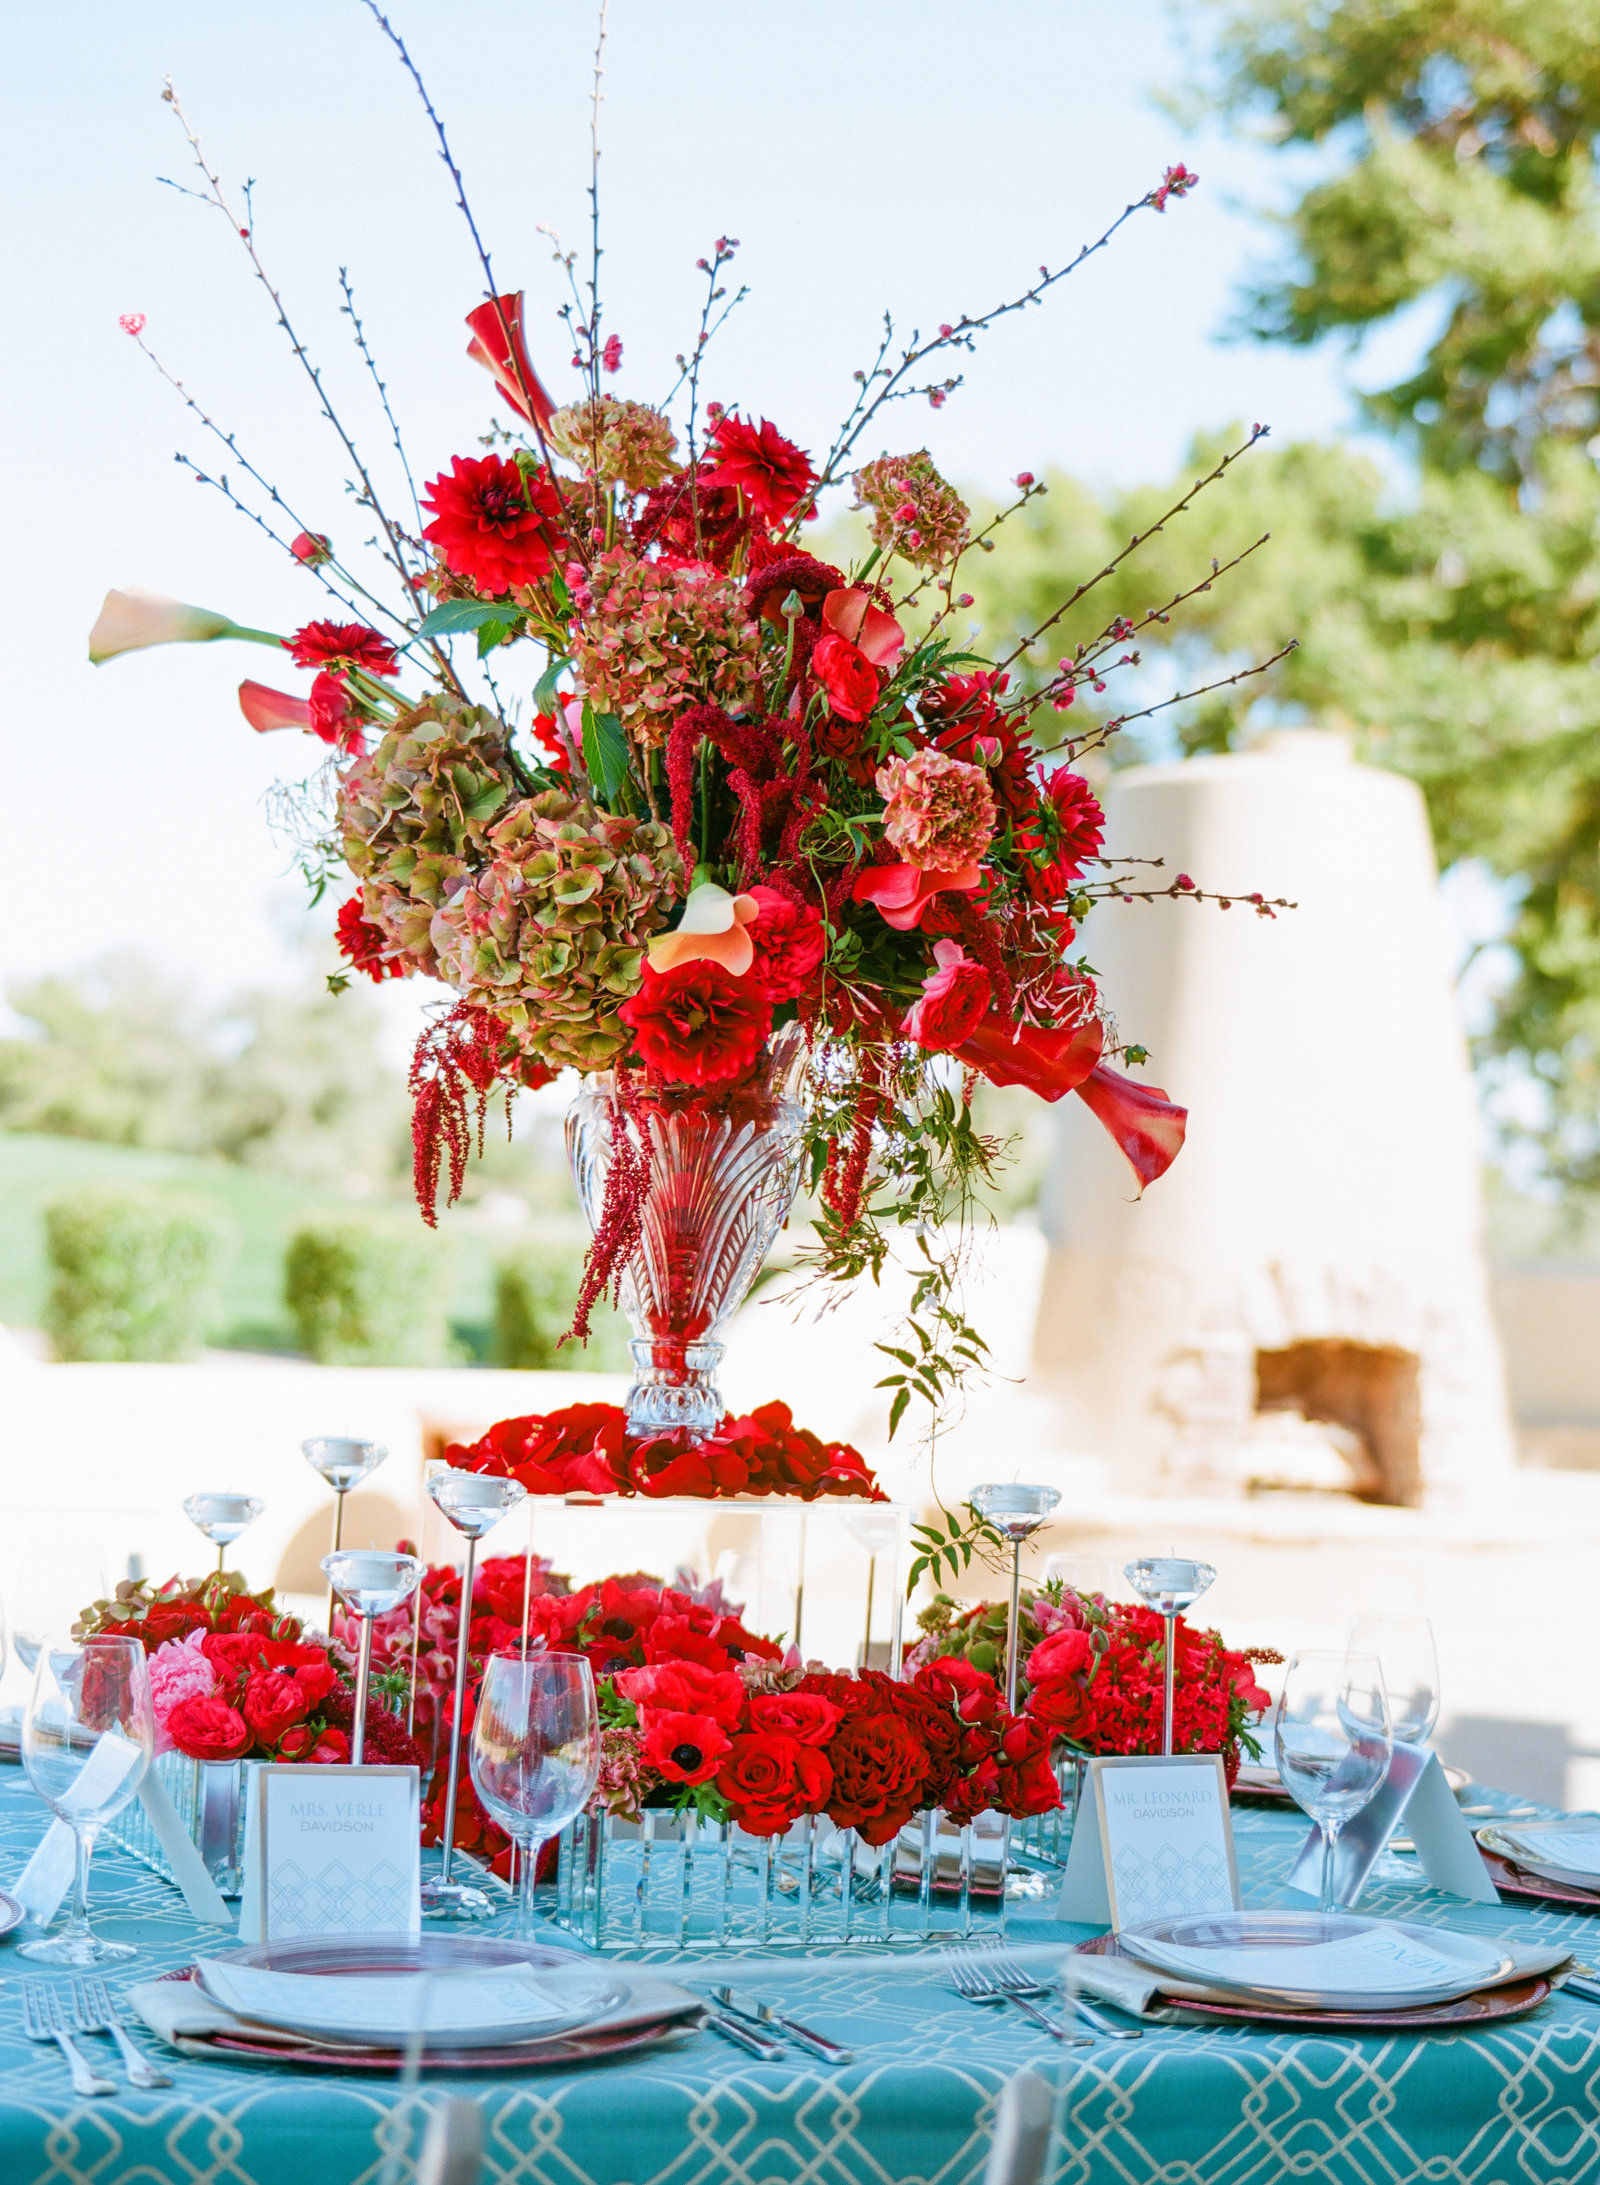 Your-Event-Florist-Arizona-Wedding-Flowers35